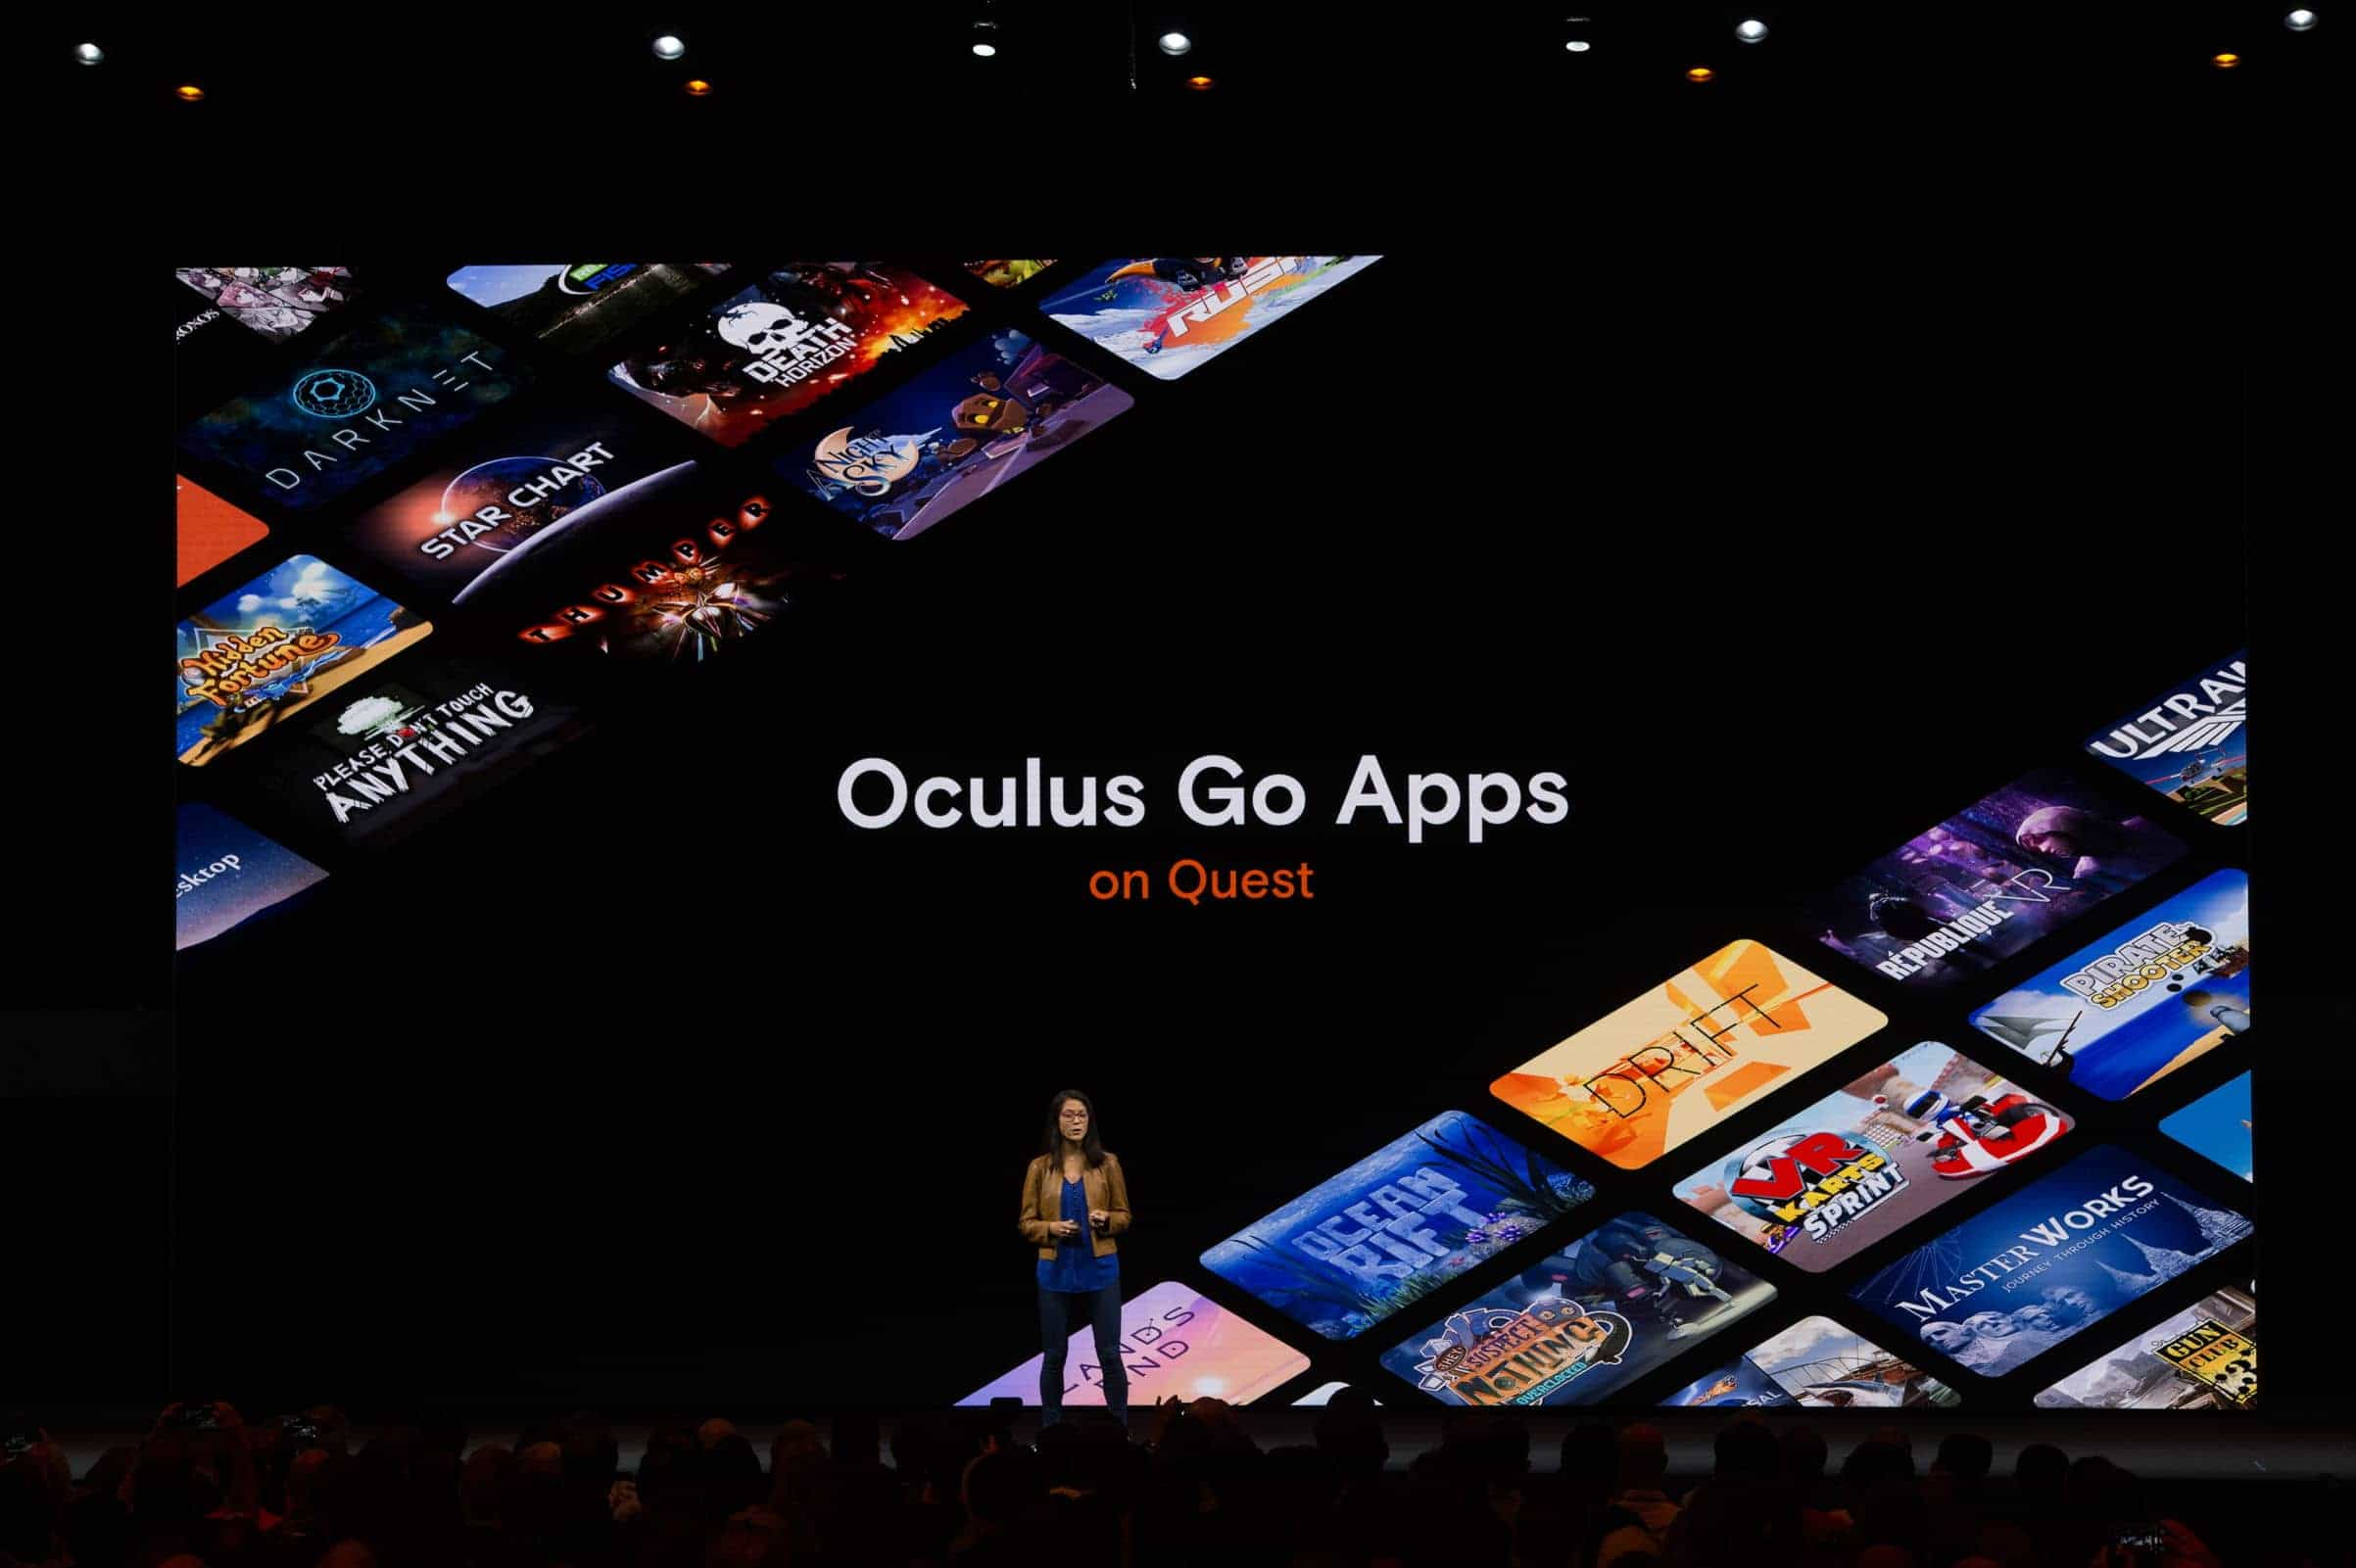 oculus connect 6 2019 official 3